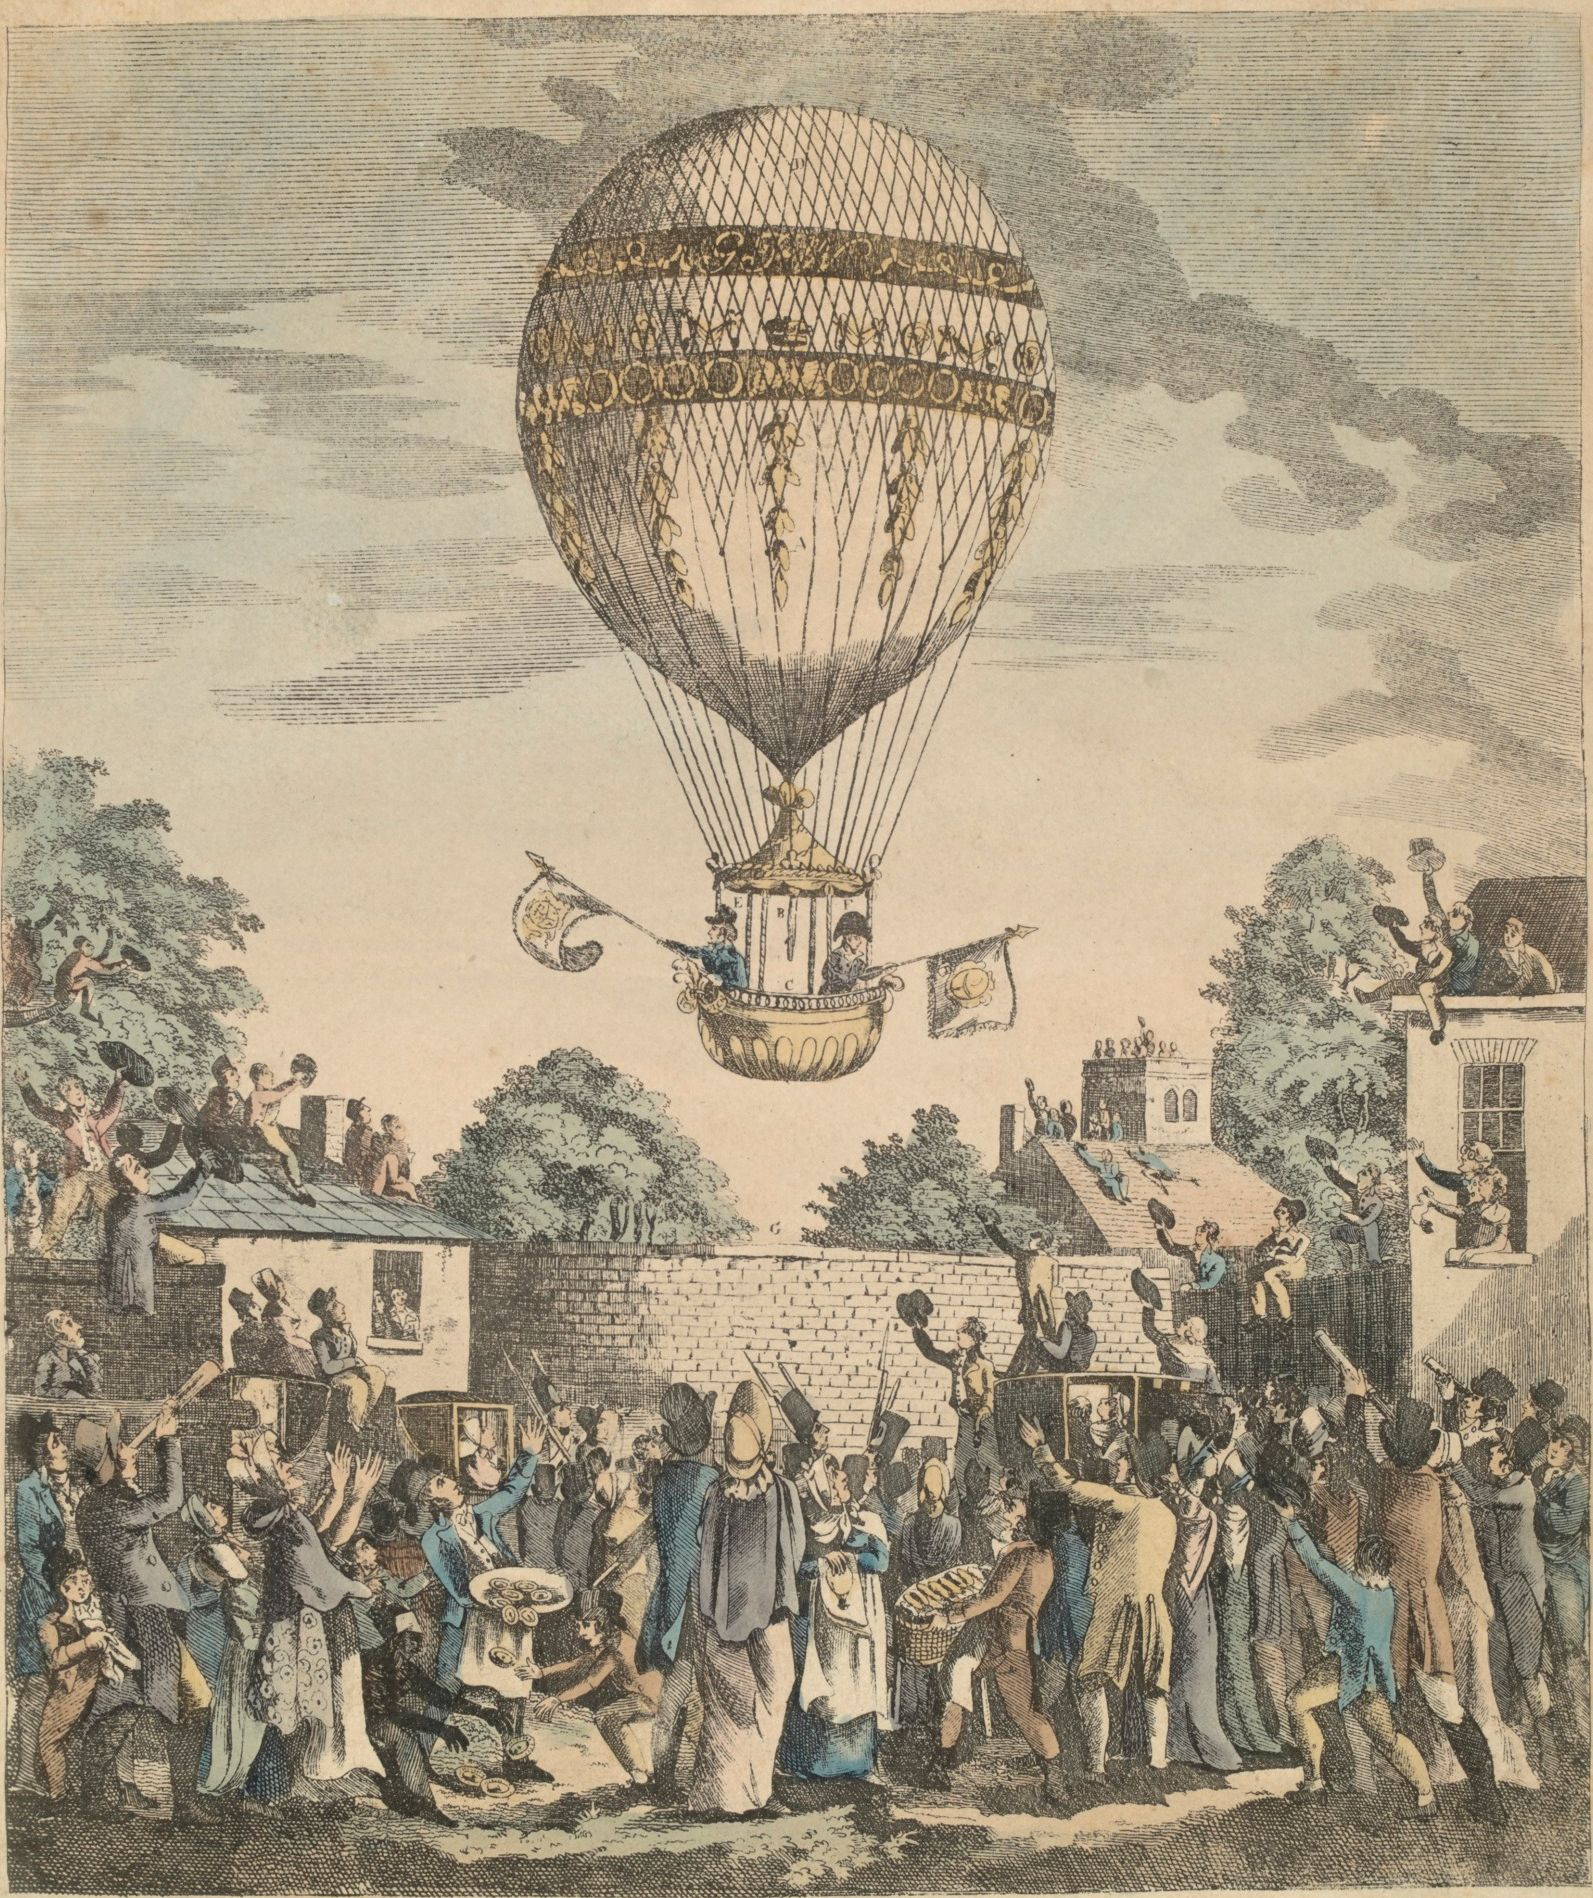 Geschiedlied: Edward II - Mr. Sadler's Balloon